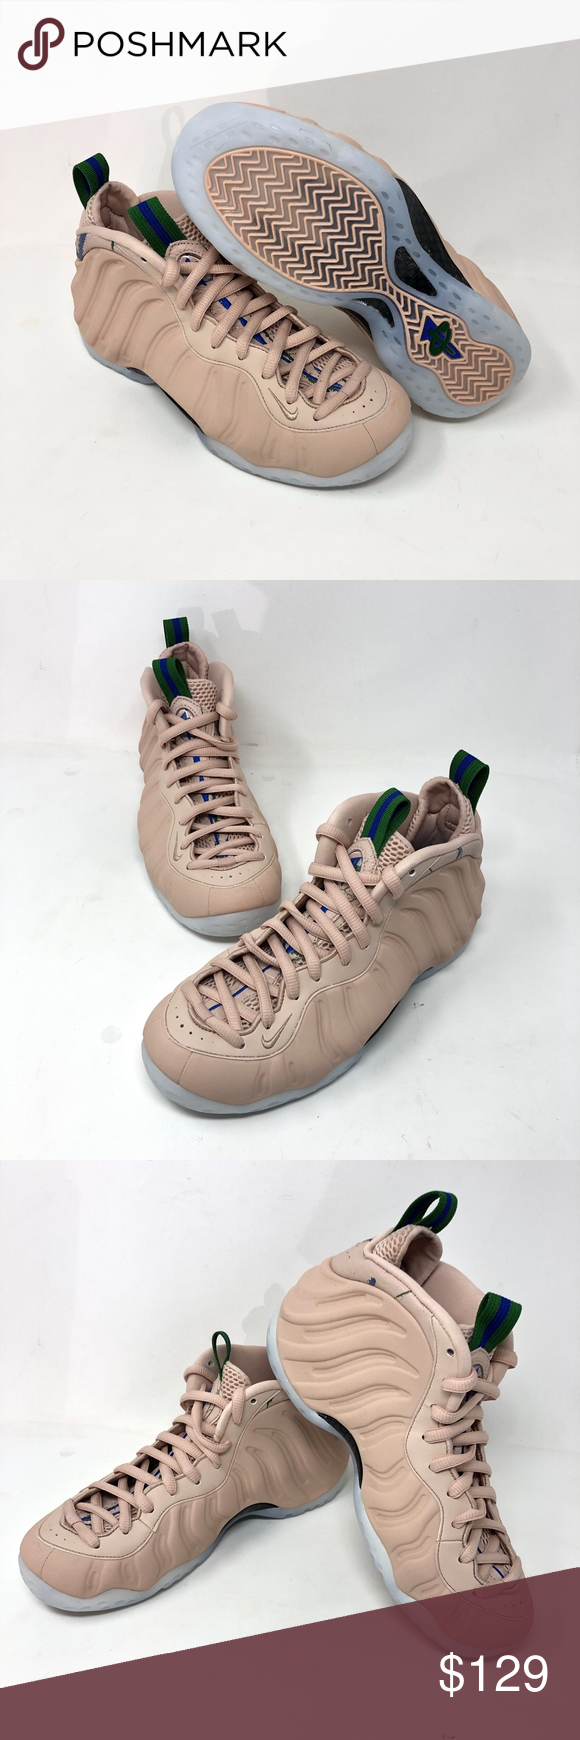 Nike Air Foamposite One ParaNorman Complex